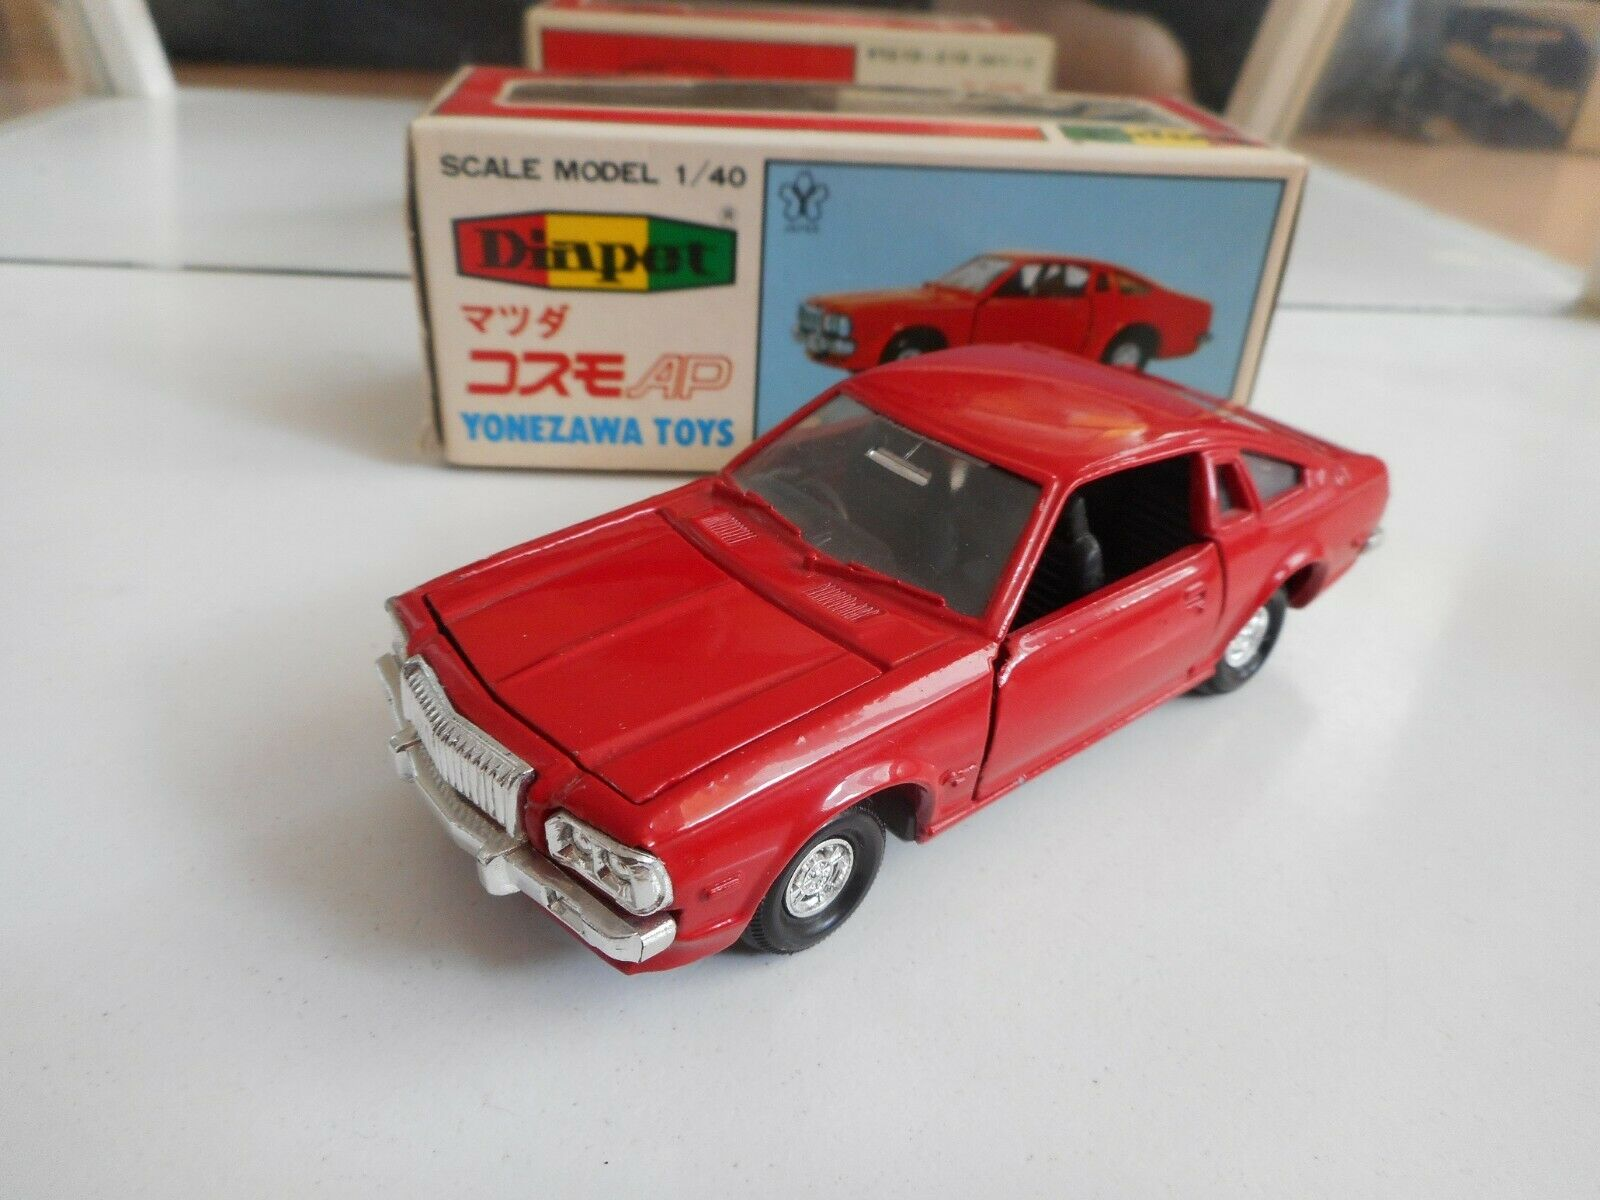 Yonezawa Toys Diapet Mazda Cosmo  AP Limited in rouge on 1 40 in Box  produits créatifs